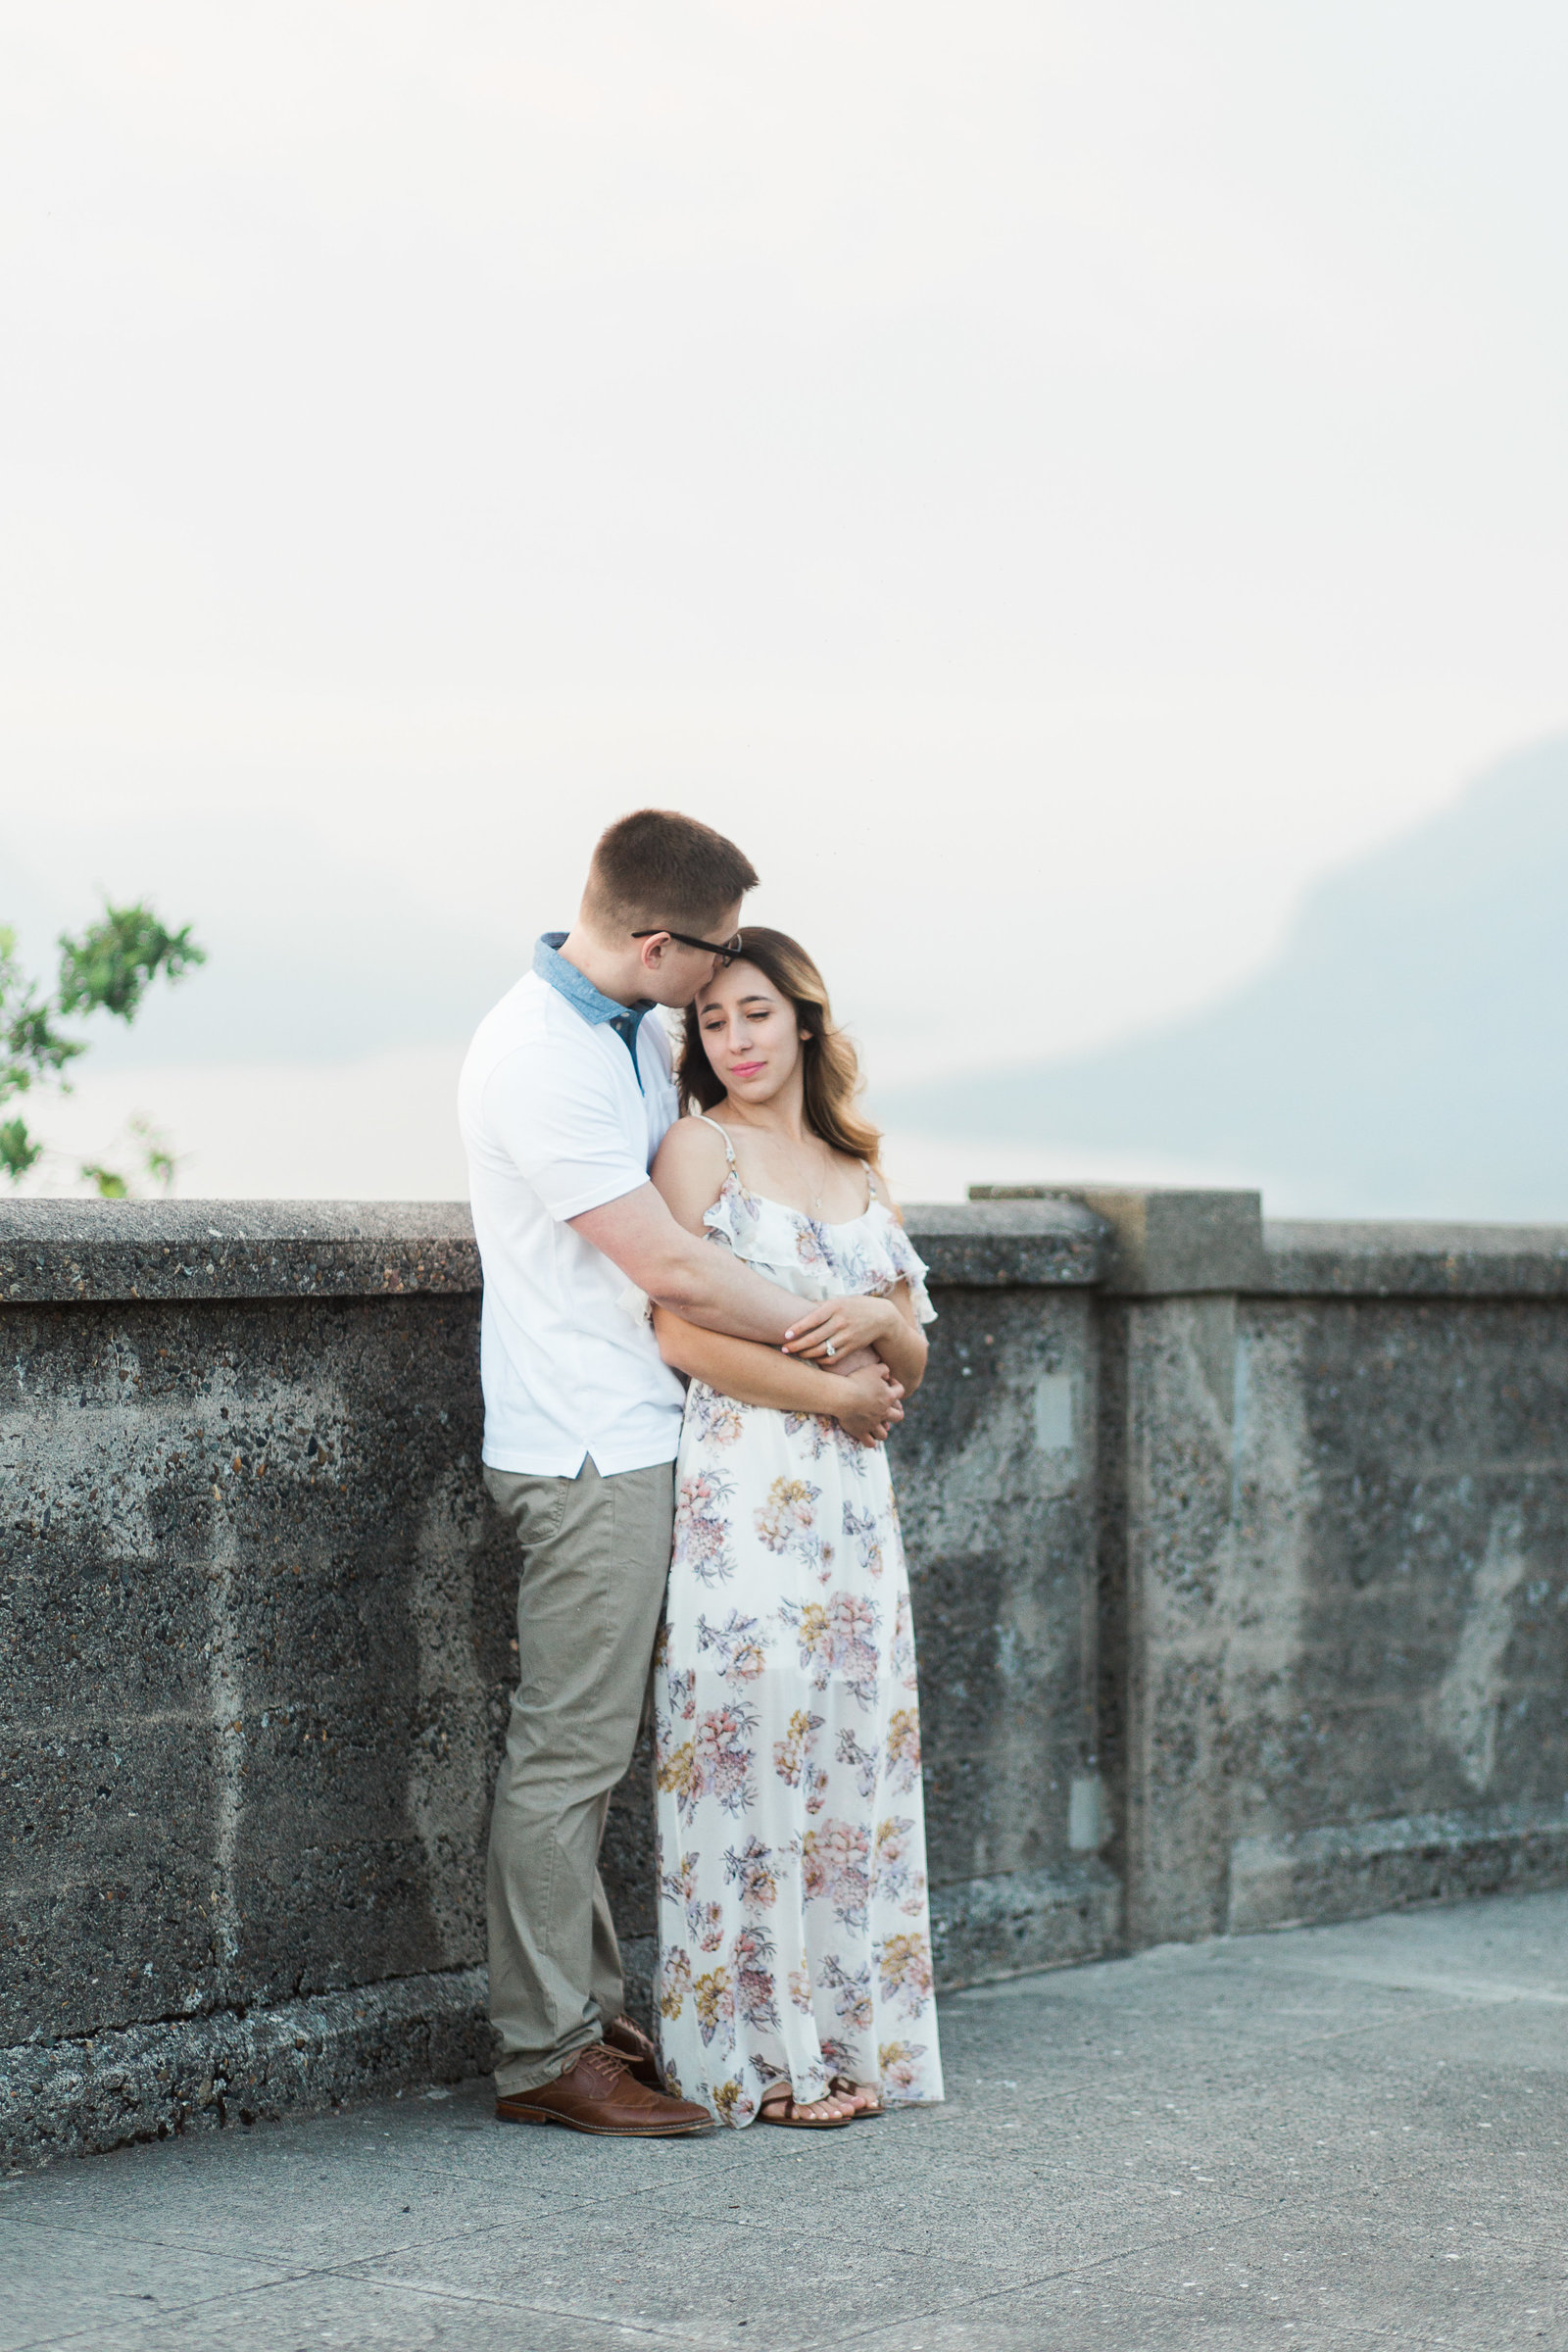 Georgia-Ruth-Photography-Columbia-Gorge-Engagements-LG-90